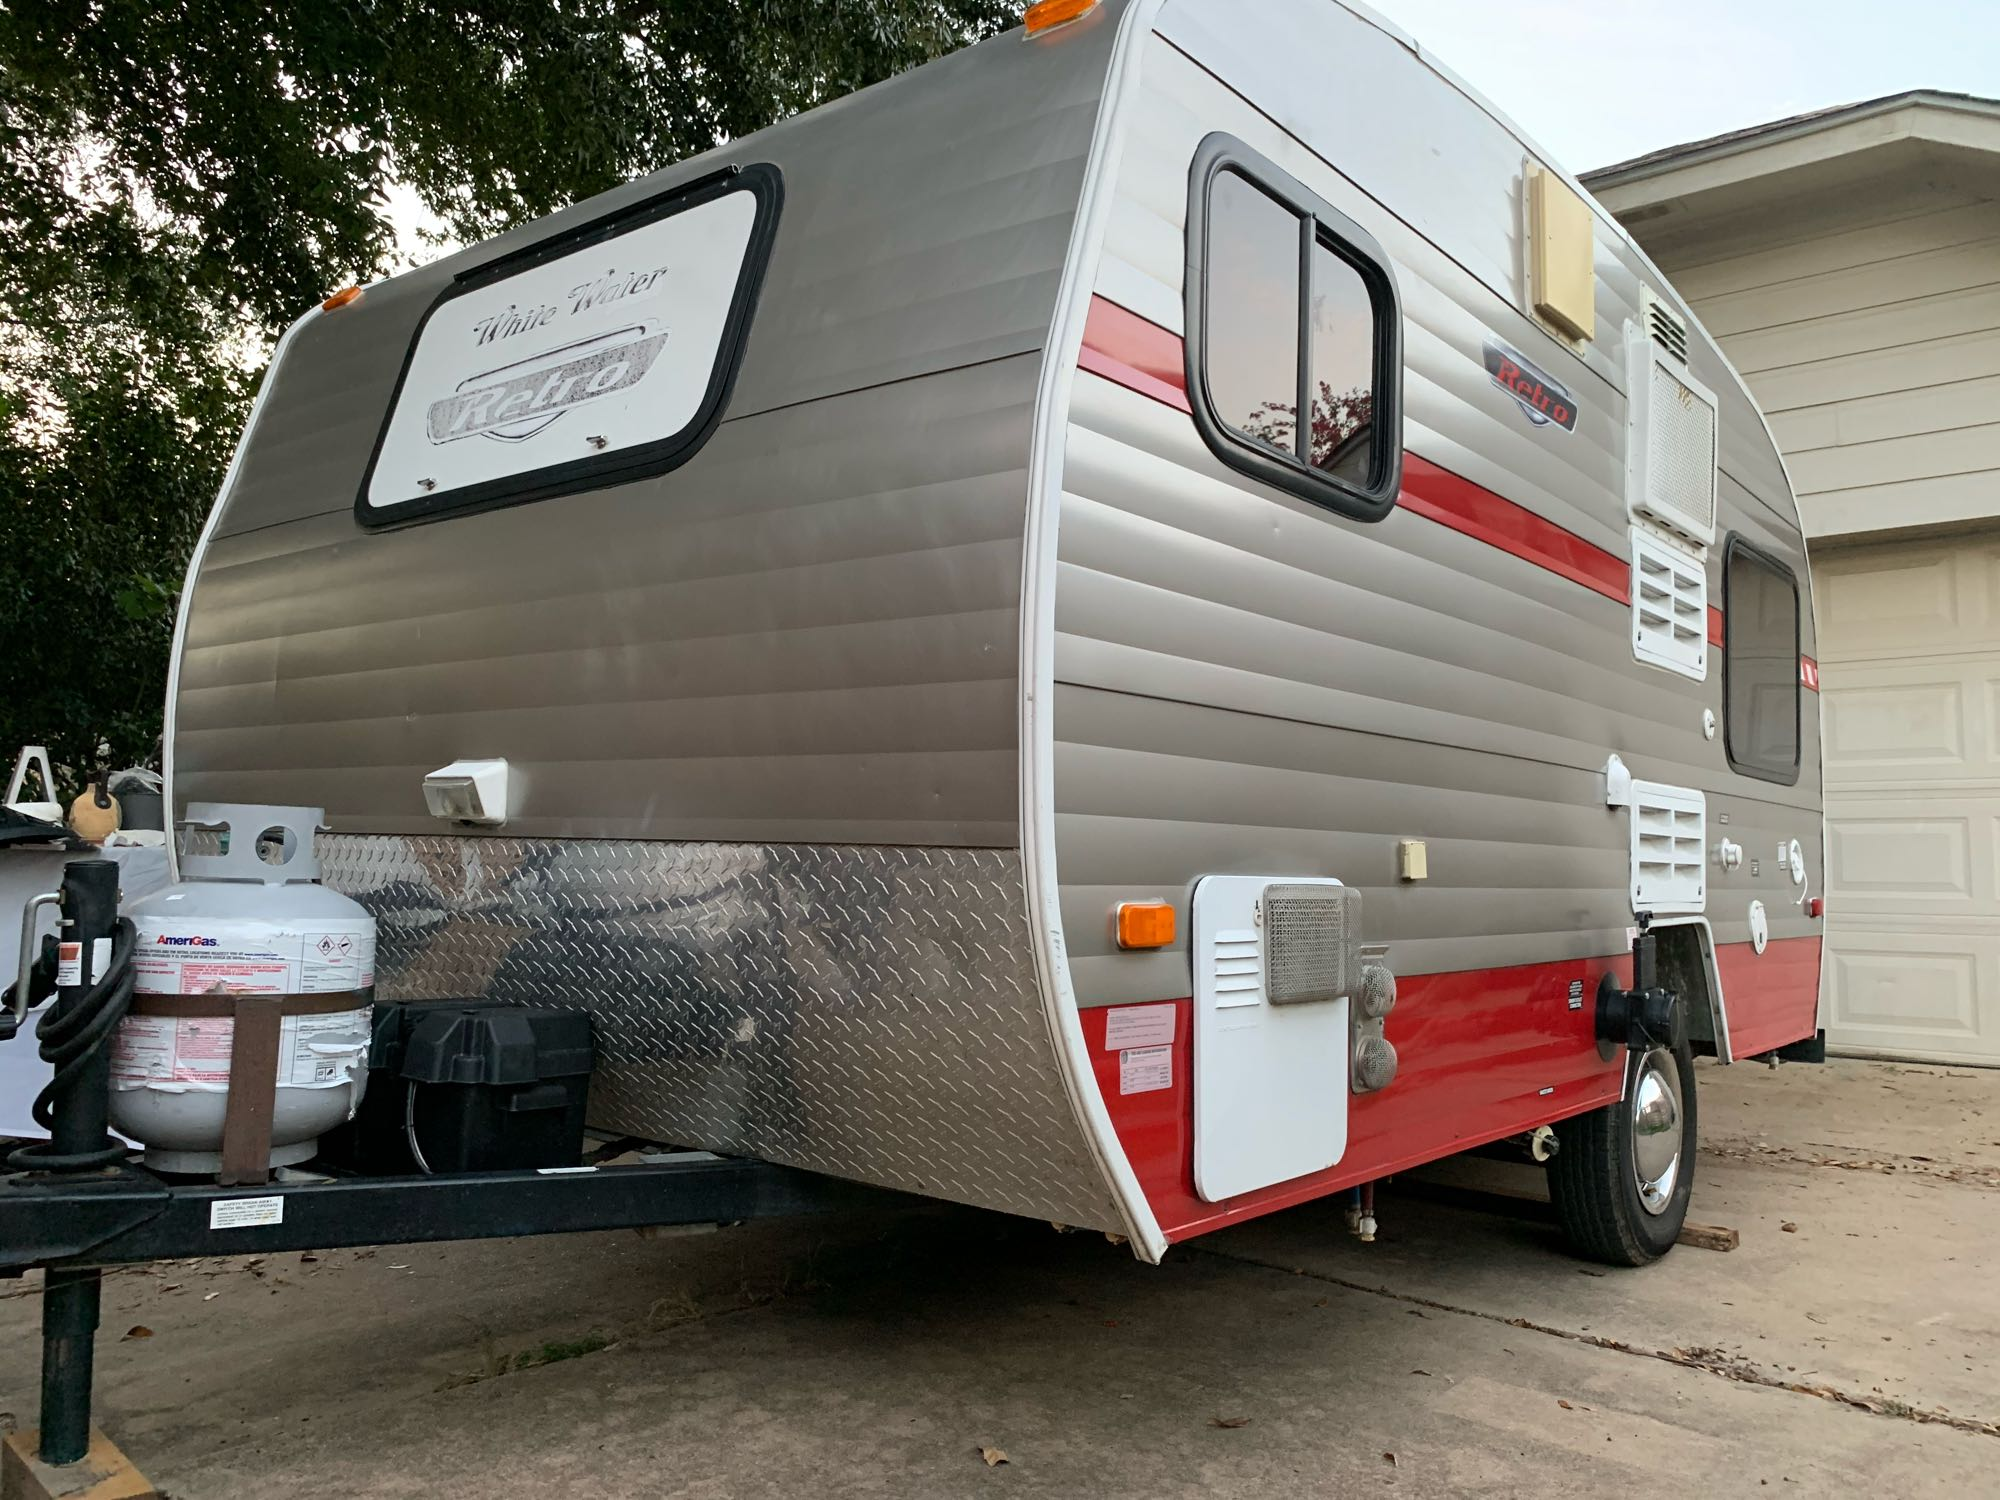 NOT your grampa's canned ham—this tiny 13 ft. long camper LOOKS retro—but inside, it's outfitted with top-of-the-line amenities and comfort.. RiversideRv Whitewater#155(DealervideosareavailableonYouTubeforthismodel) 2014